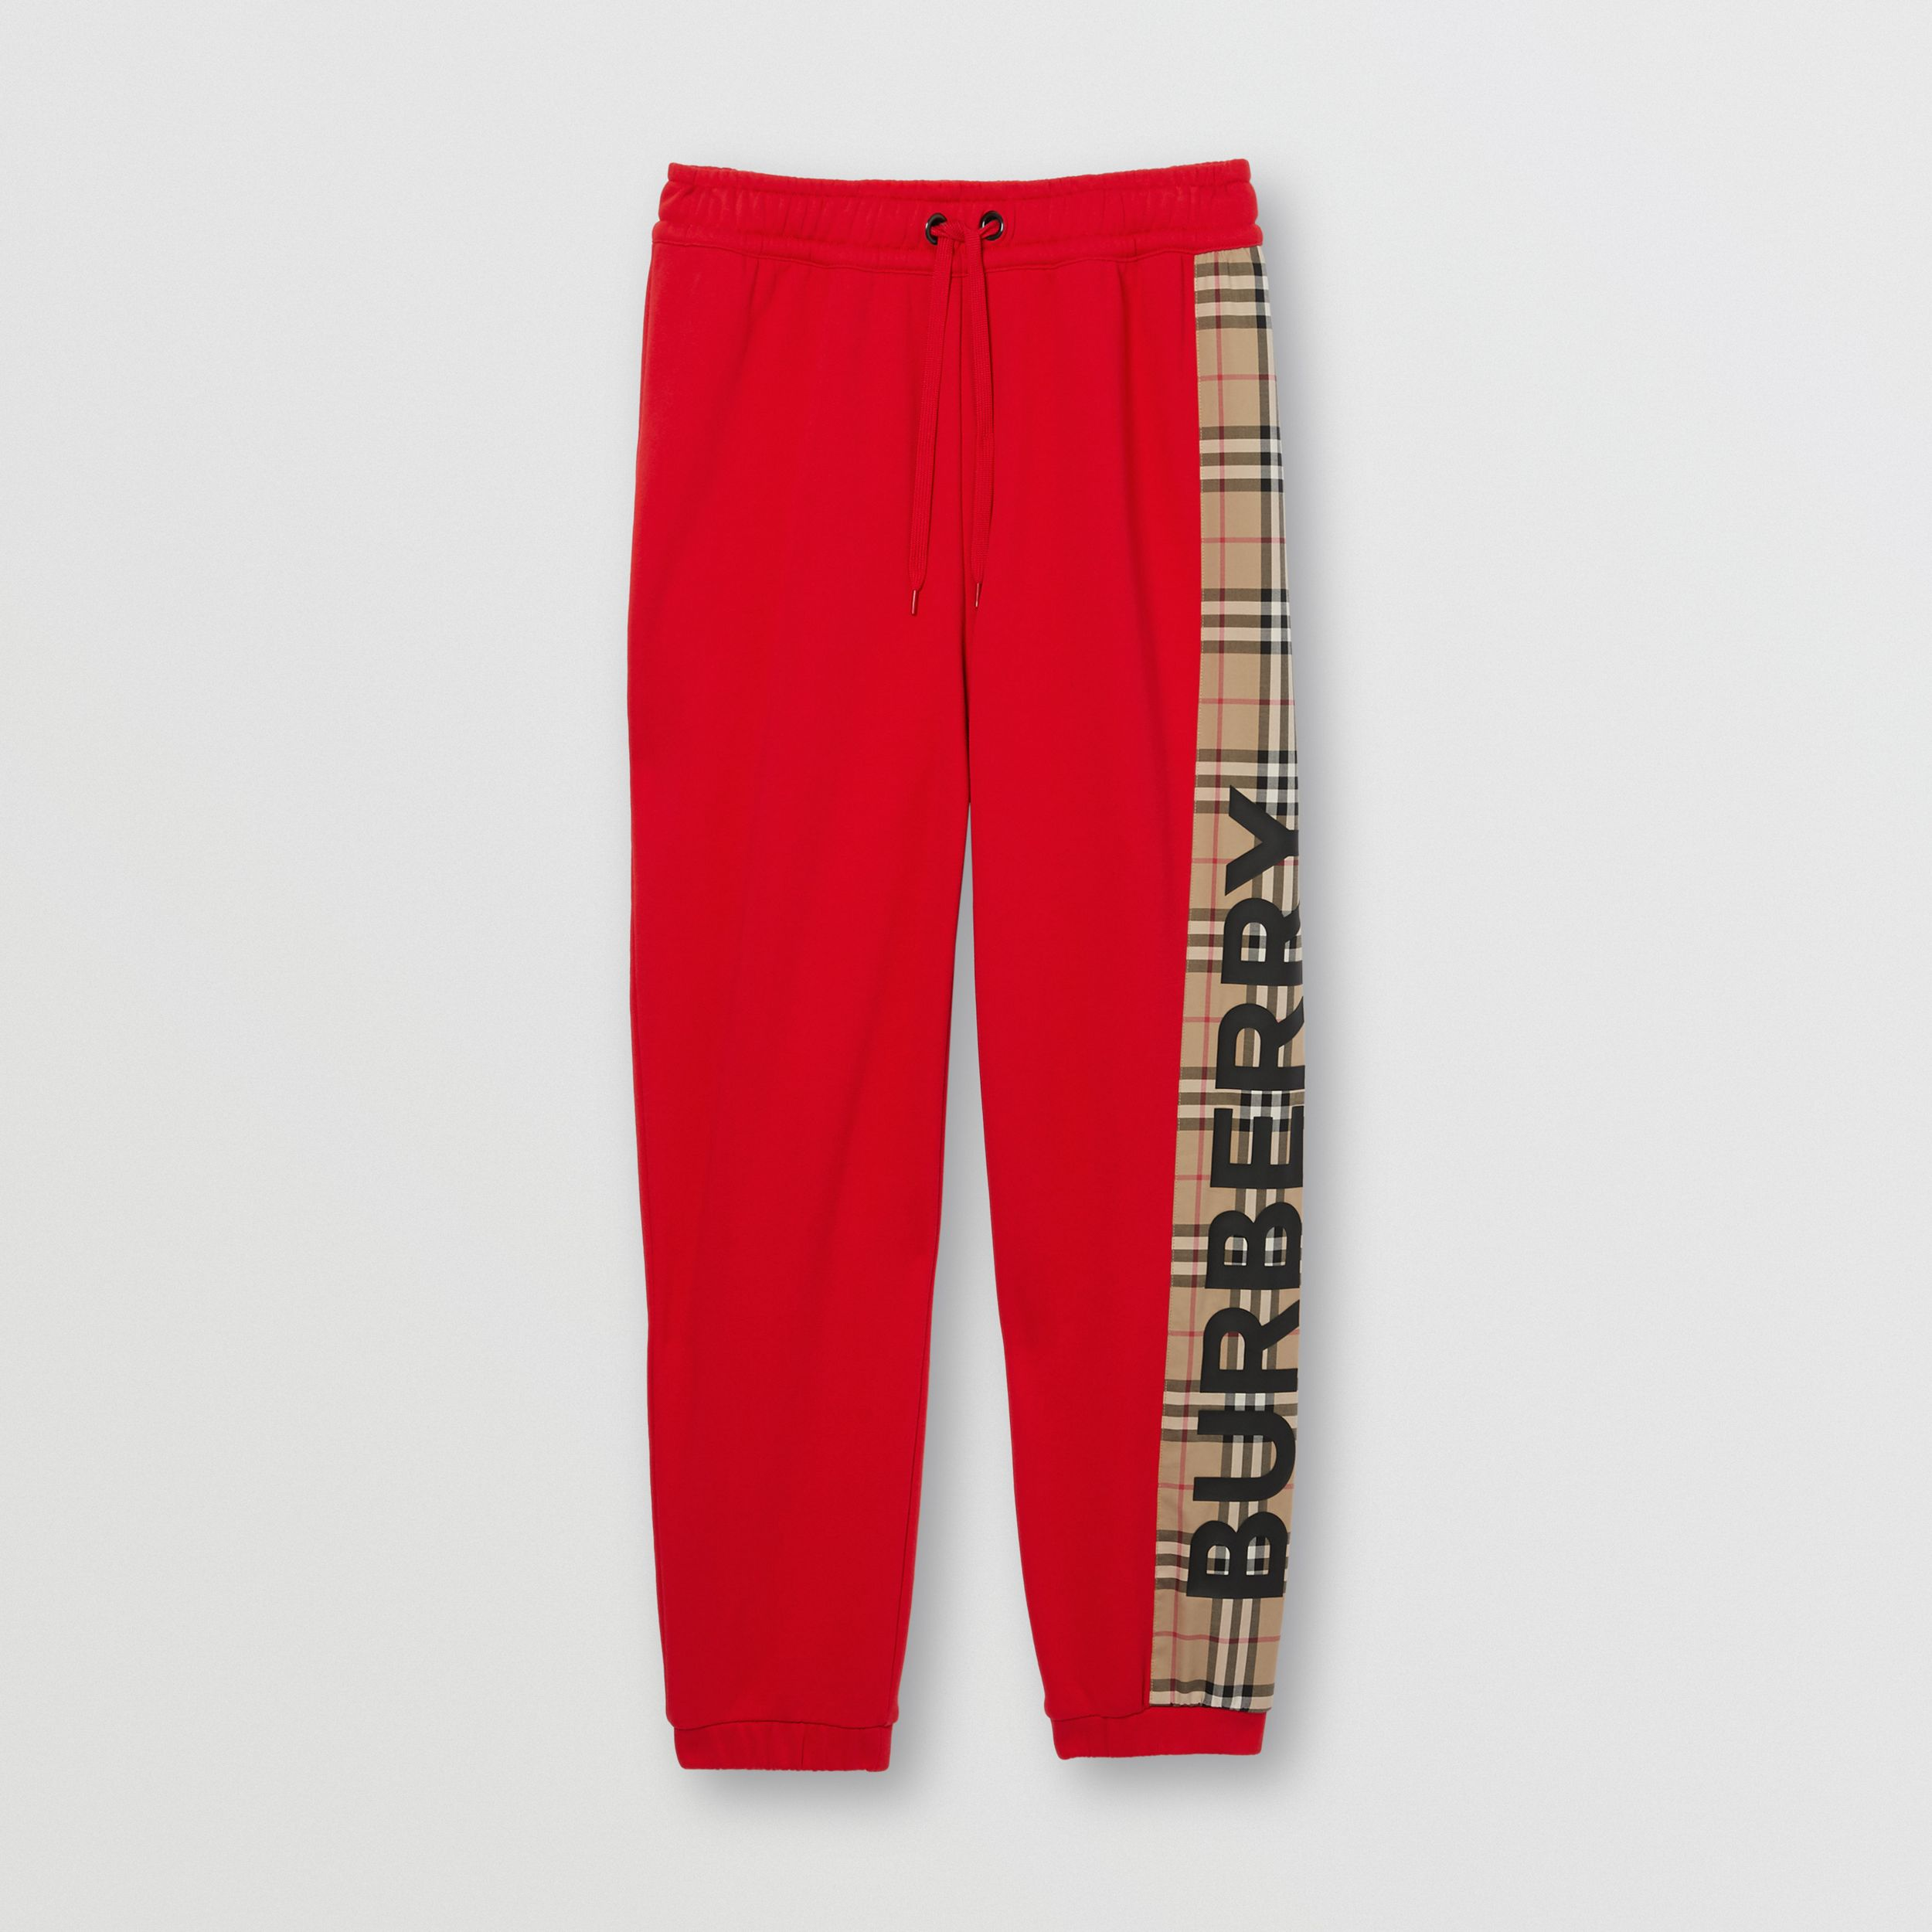 Vintage Check Panel Cotton Jogging Pants in Bright Red - Women | Burberry Canada - 4